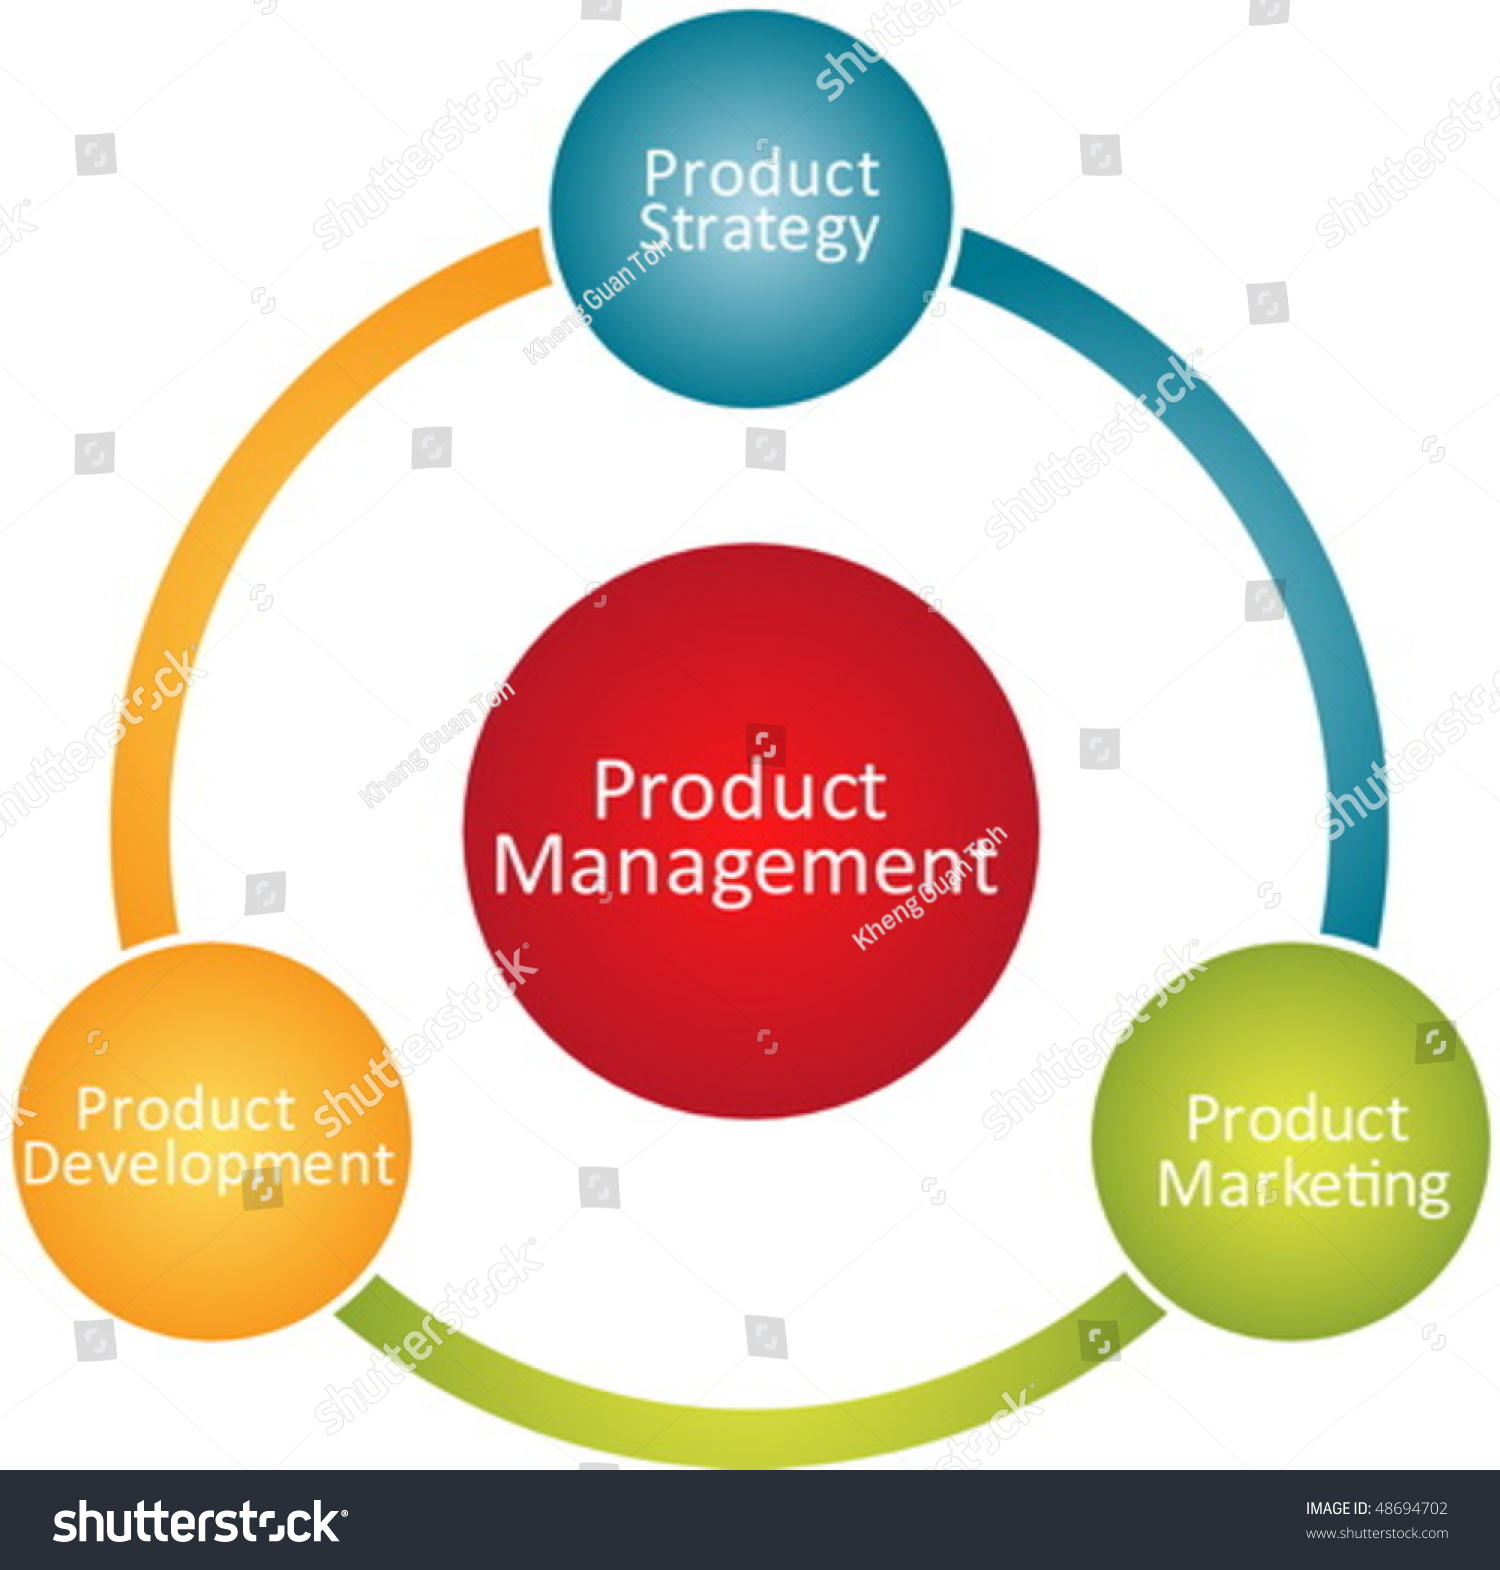 Product management marketing development business strategy for Company product development